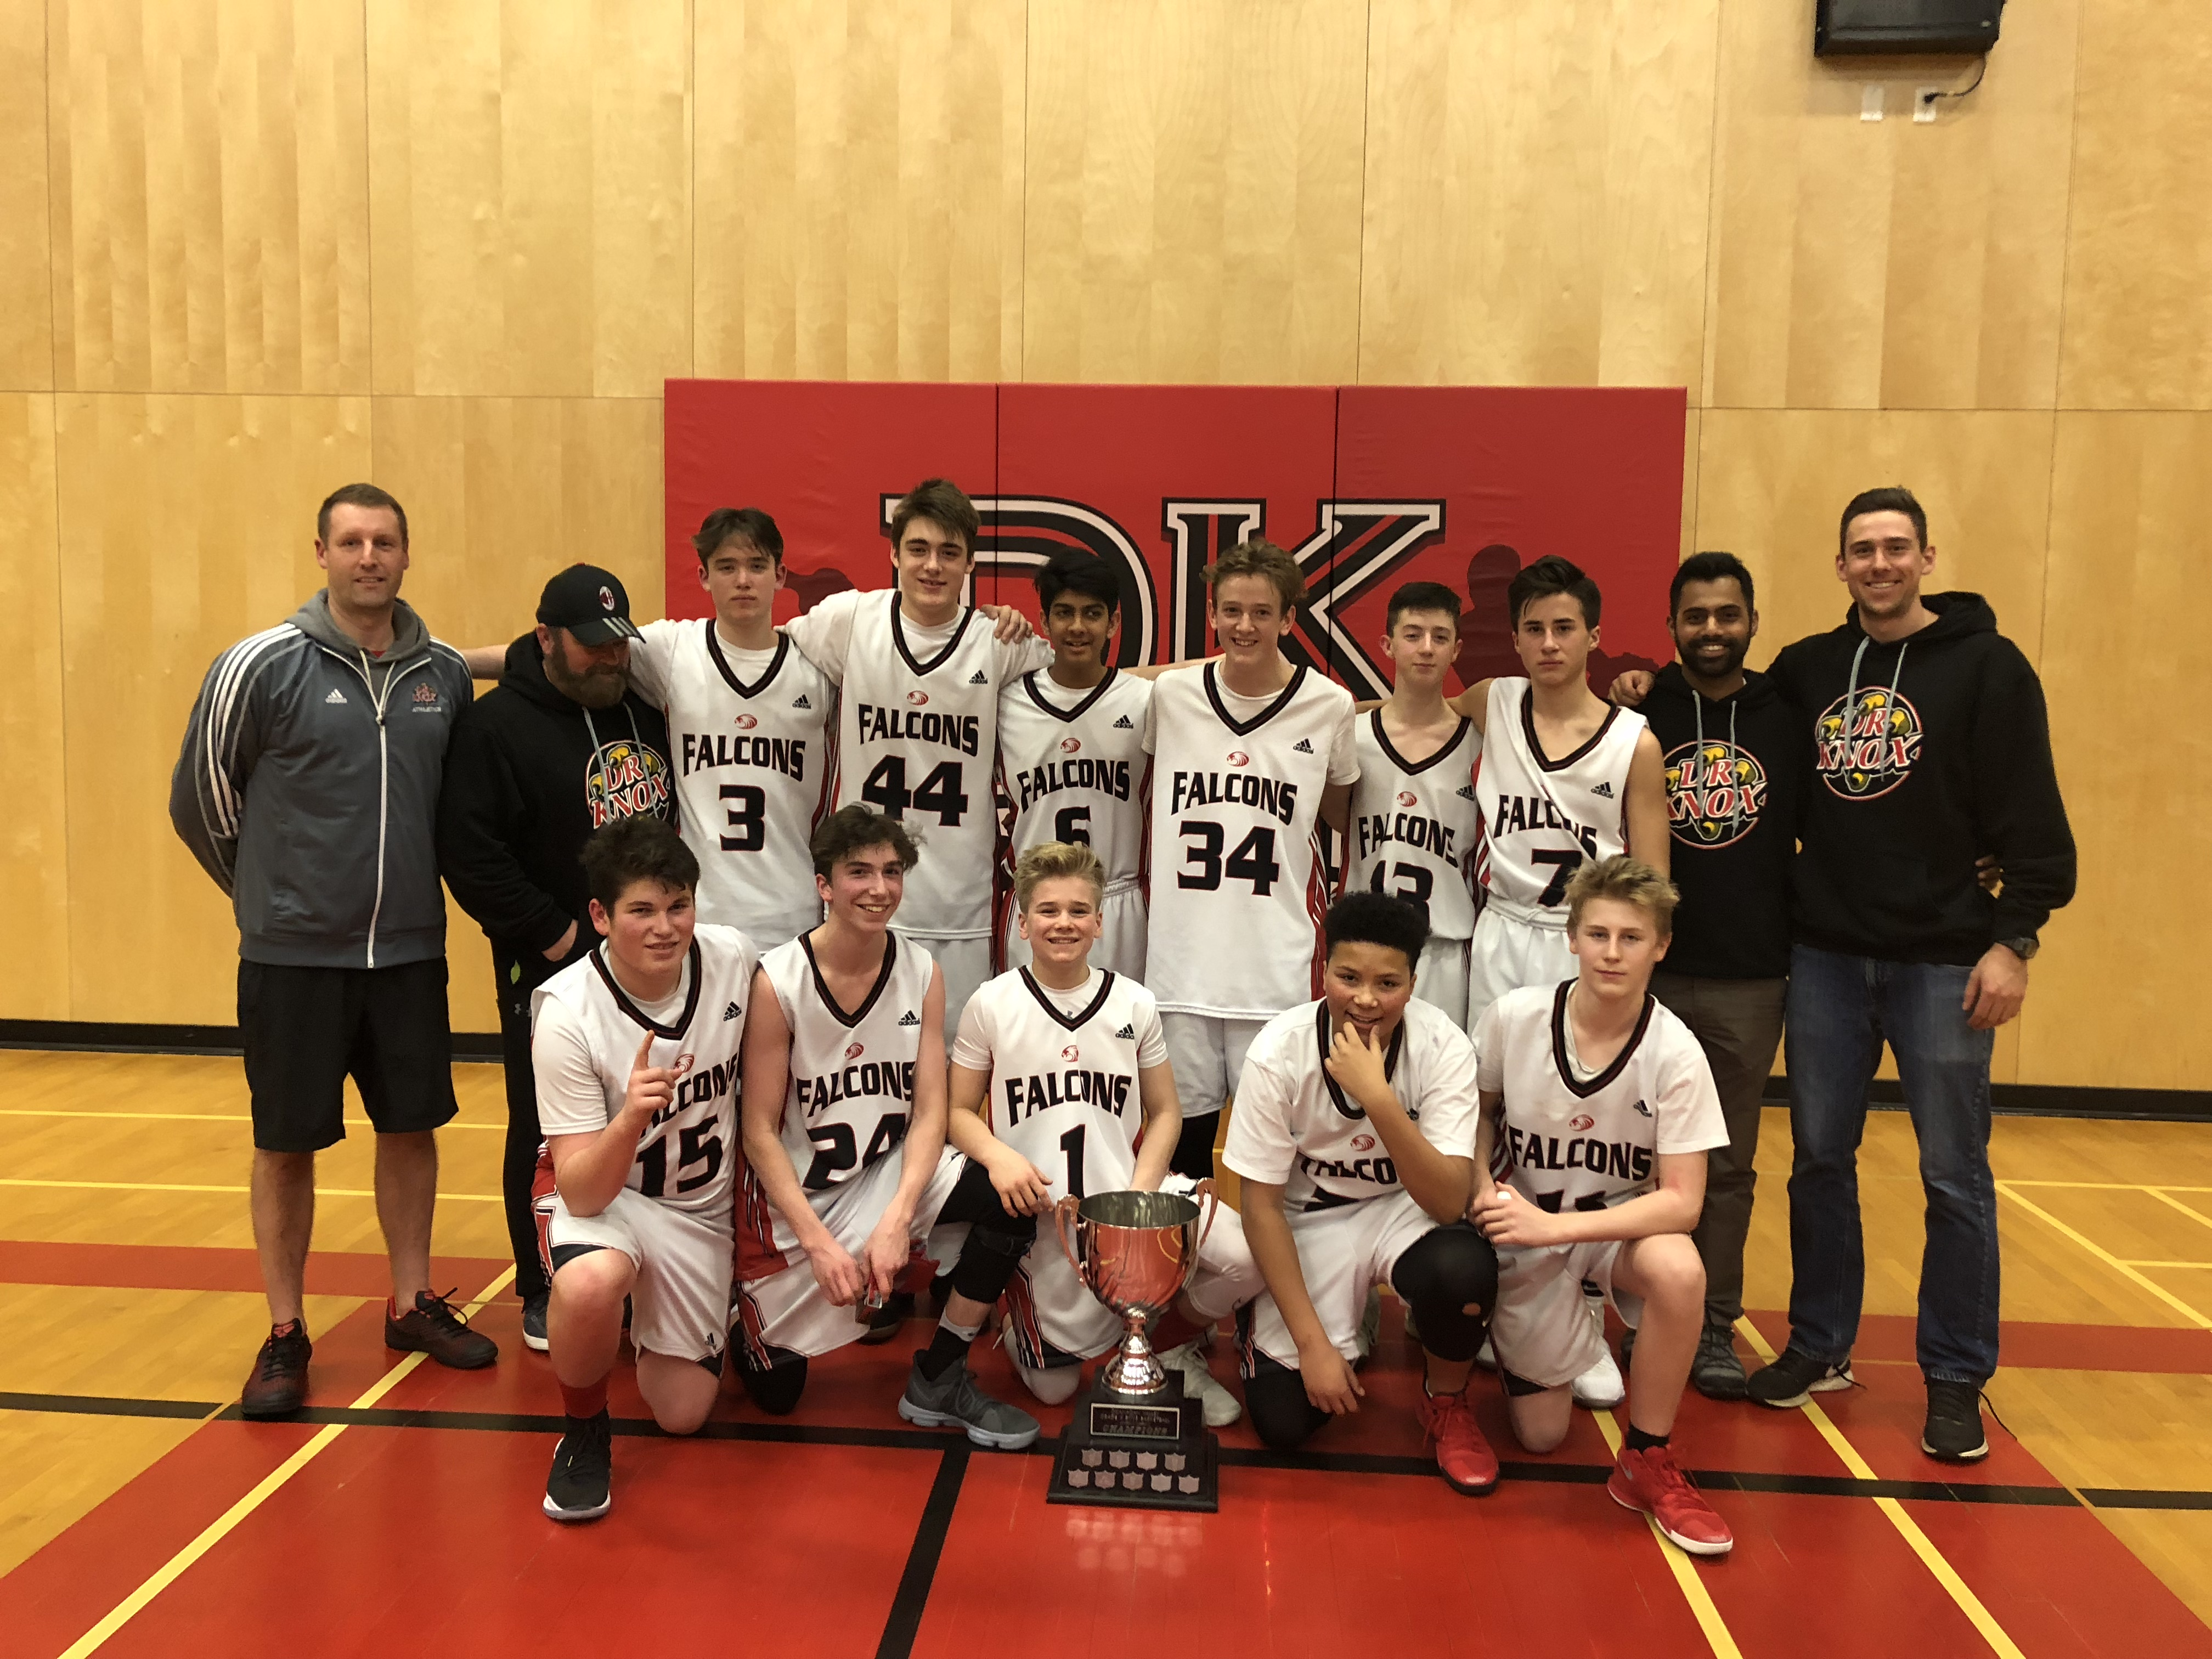 Congrats to the Knox Grade 9 Boys Valley Champs!